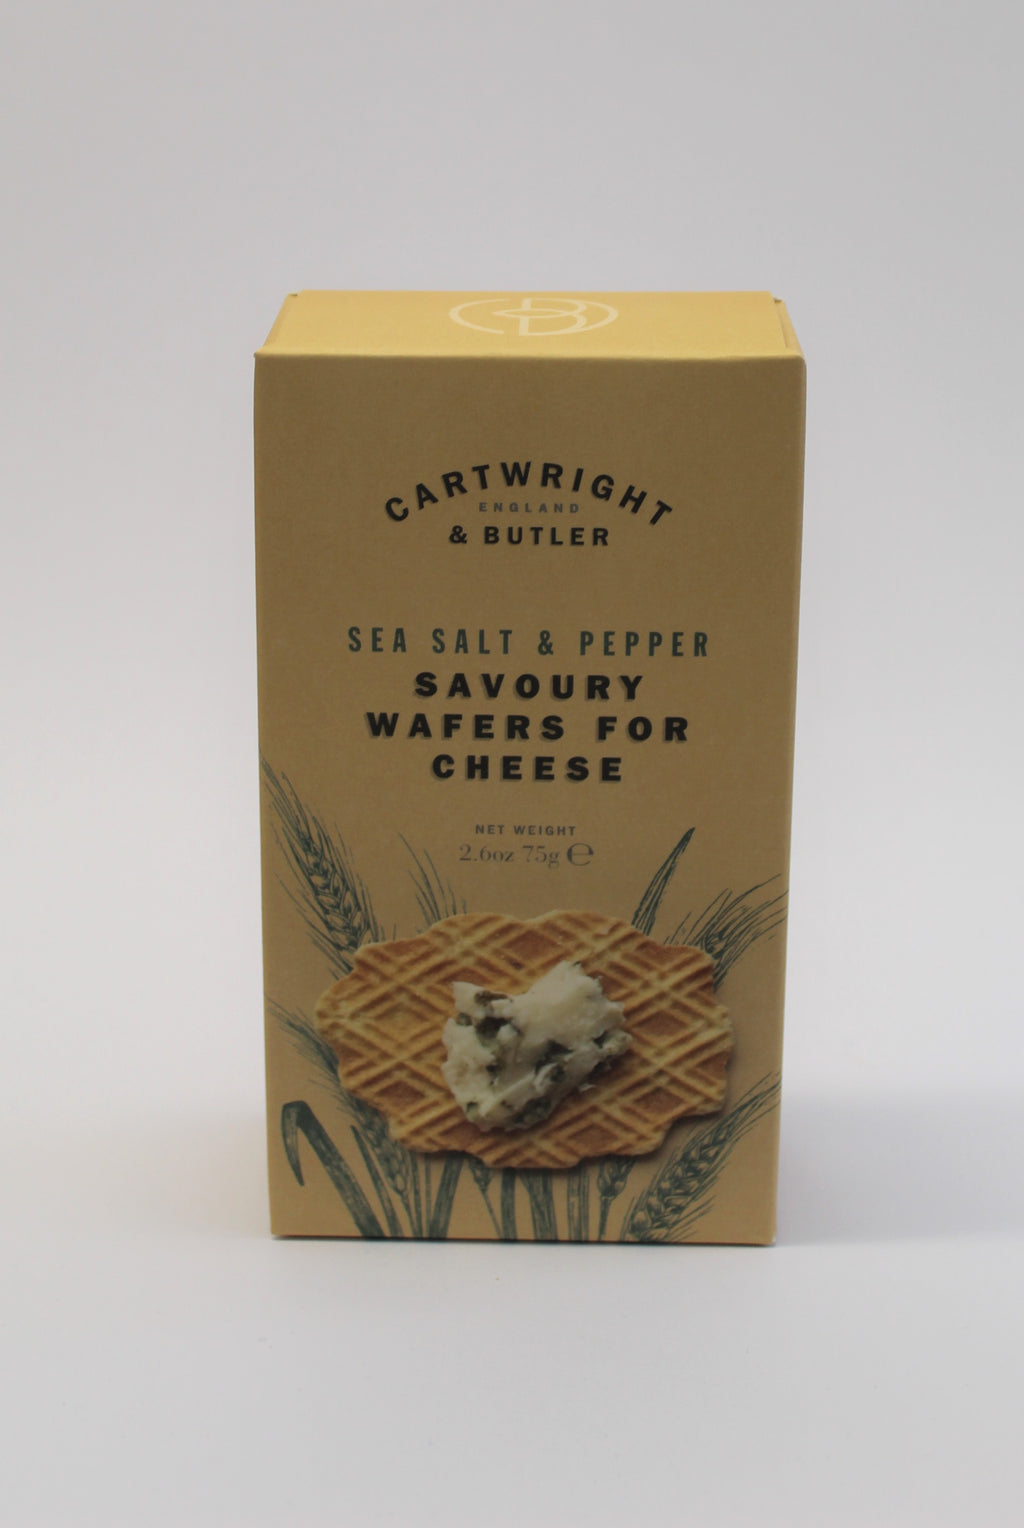 Sea salt & pepper savoury wafers for cheese